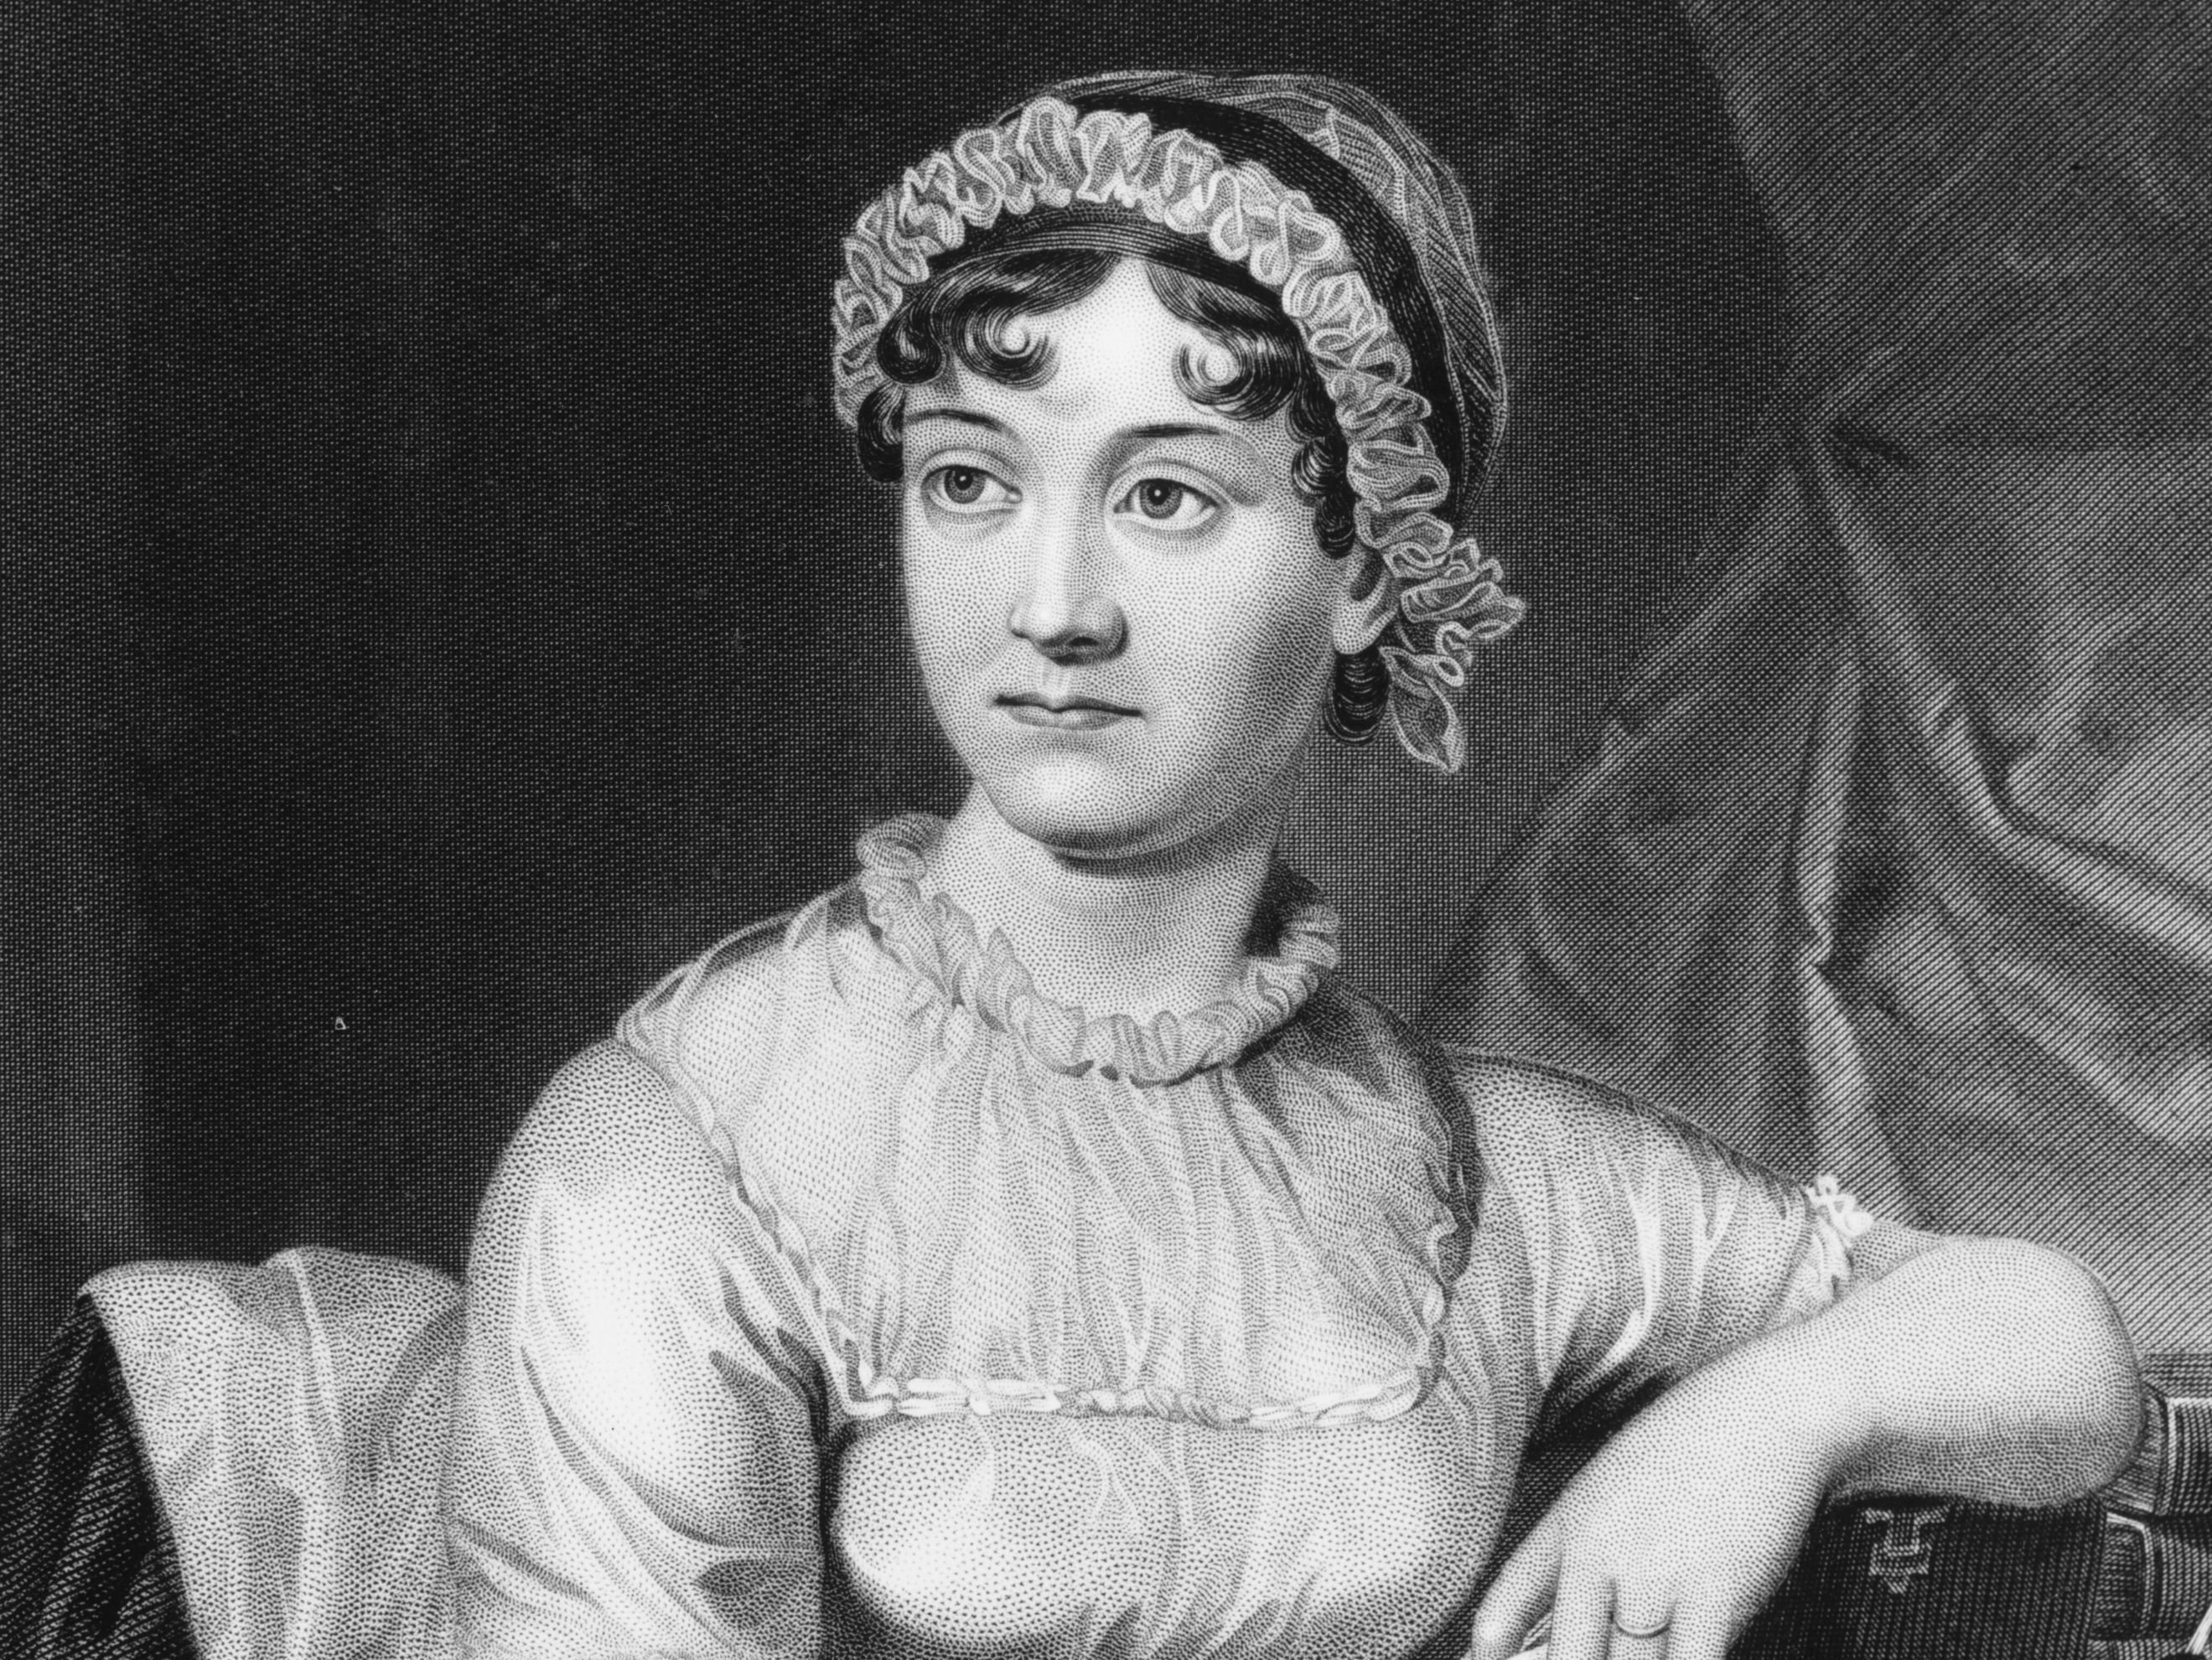 Jane Austin portrait